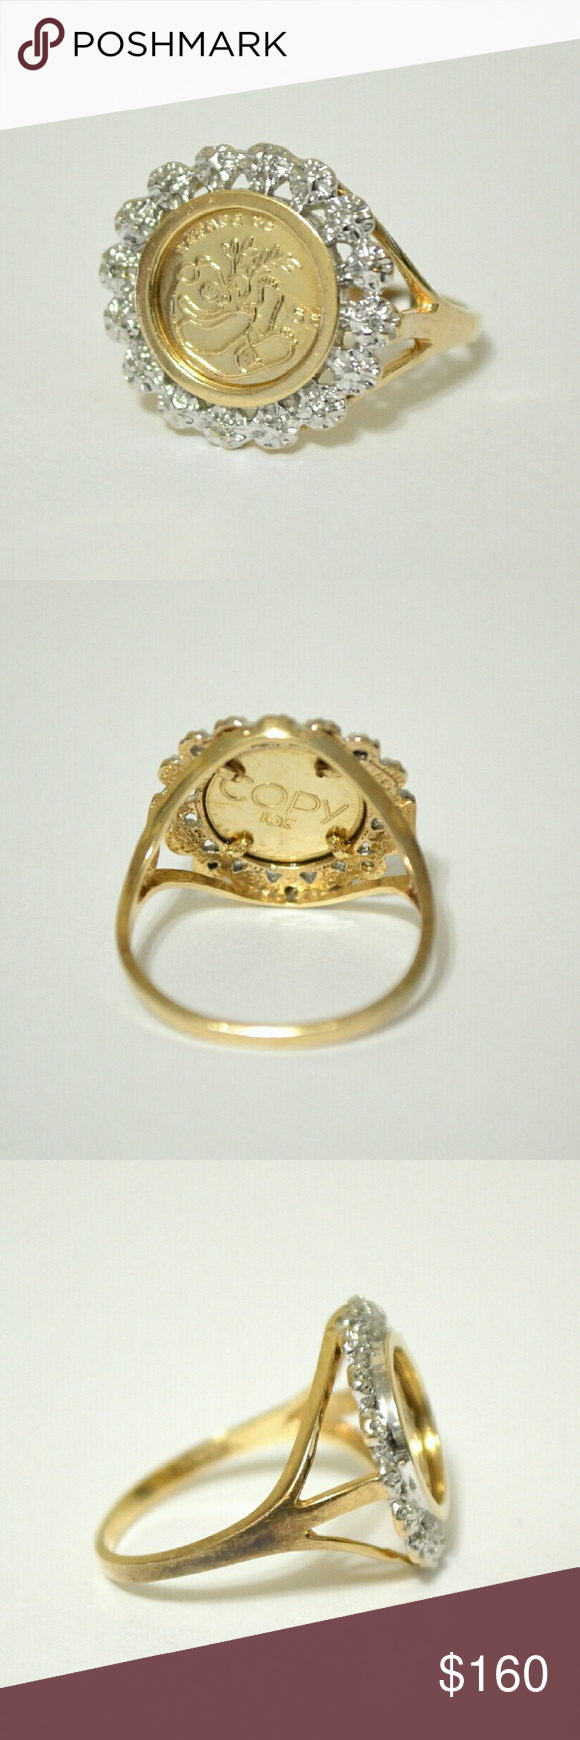 10k Yellow Gold Panda Coin Ring With Diamonds Copy Coin Ring Diamond Rings